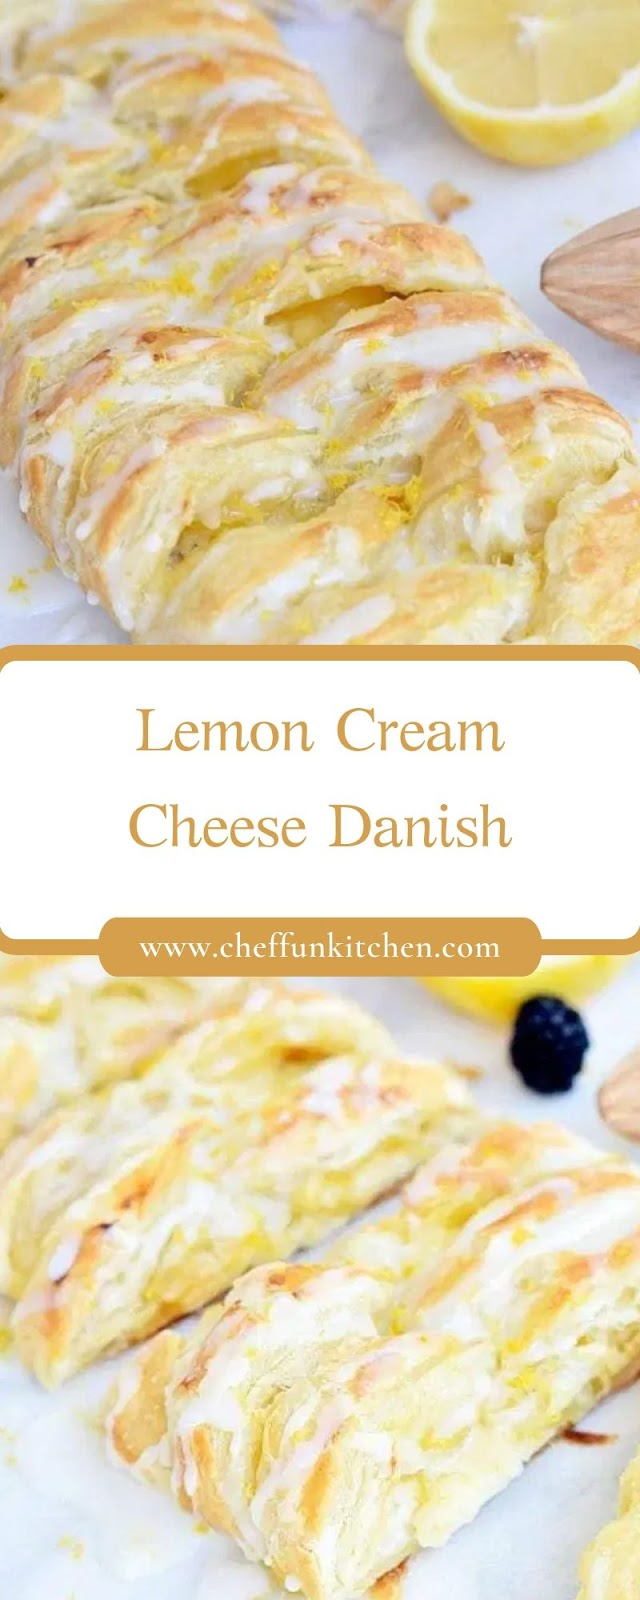 Lemon Cream Cheese Danish